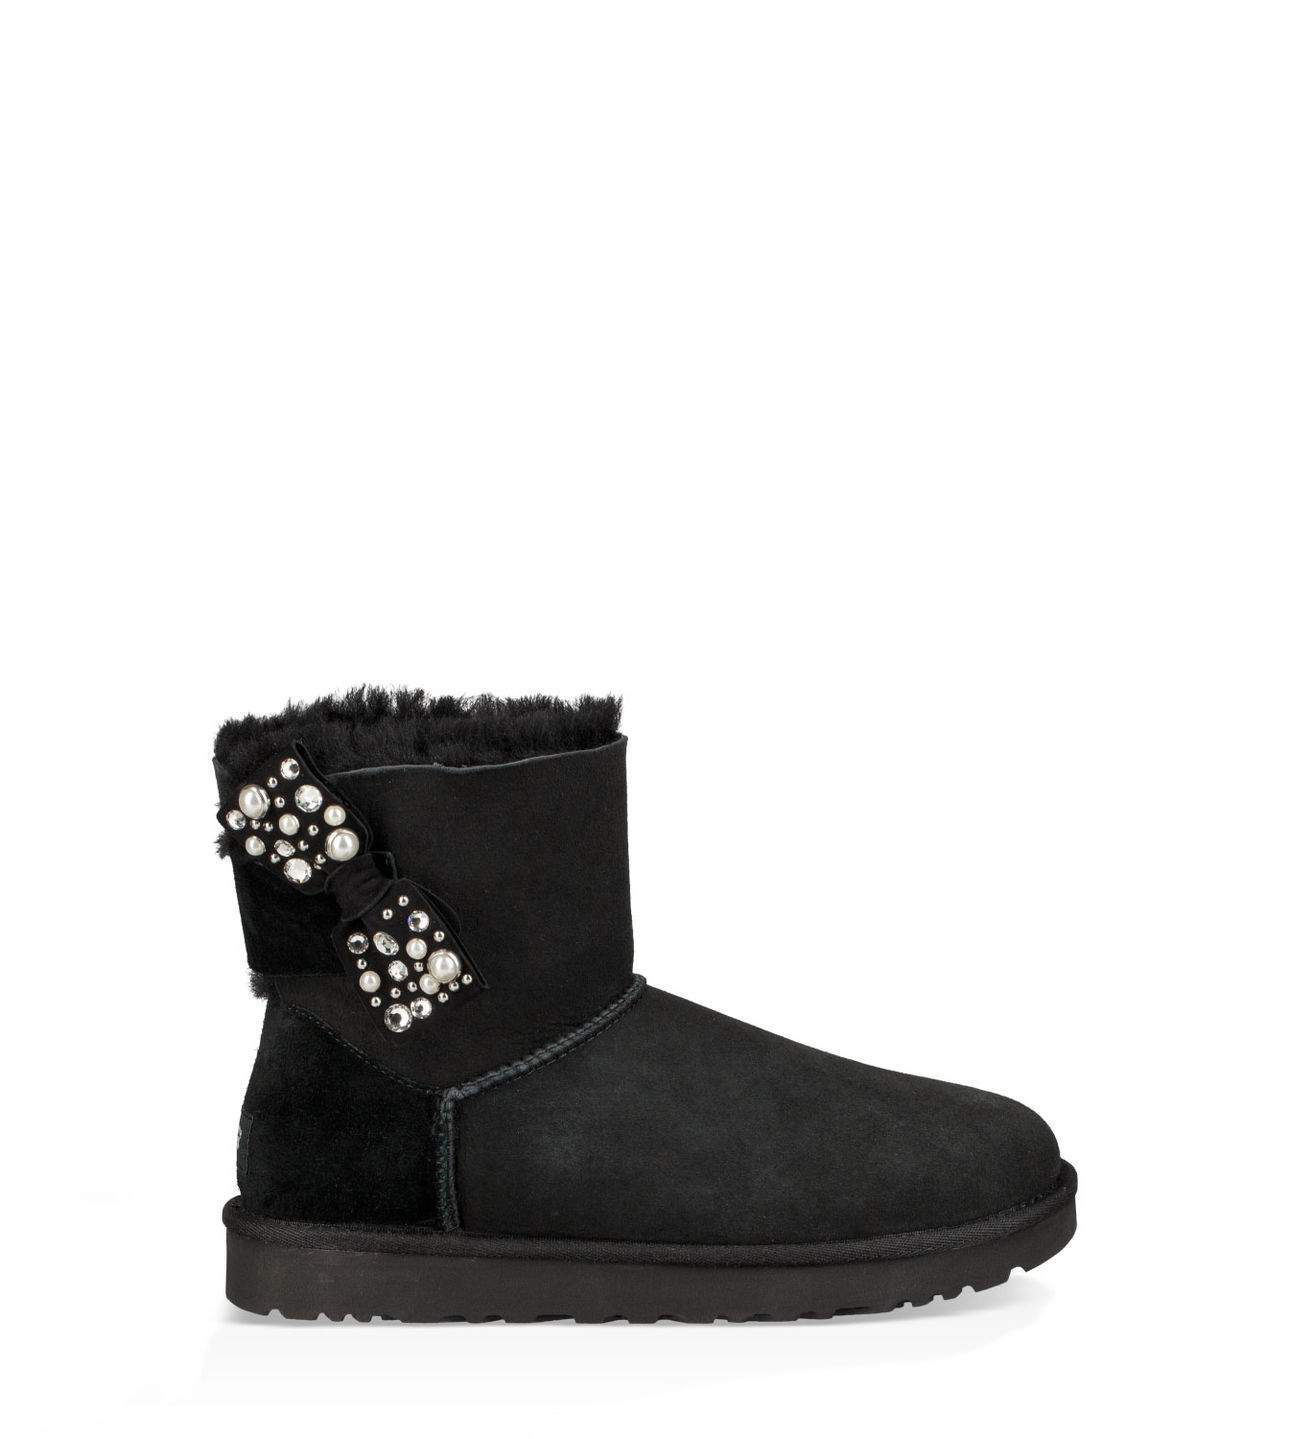 e01b386cfa1 h5>Available exclusively on UGG.COM and in UGG stores.</h5><br>Our ...